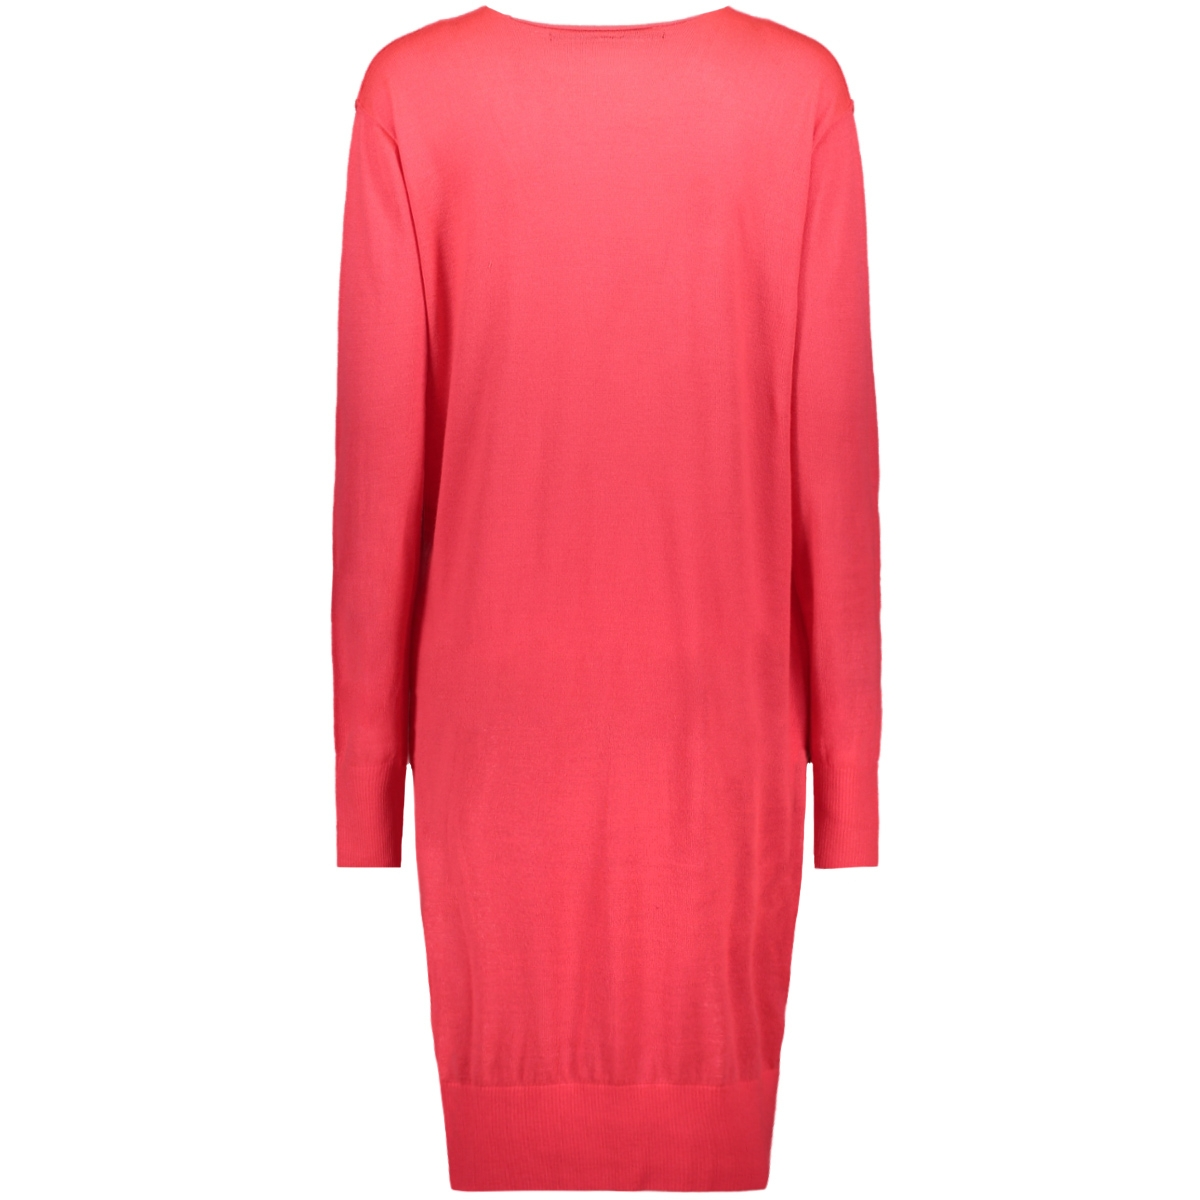 v-neck dress knit 20 635 0203 10 days jurk 1085 bubblegum